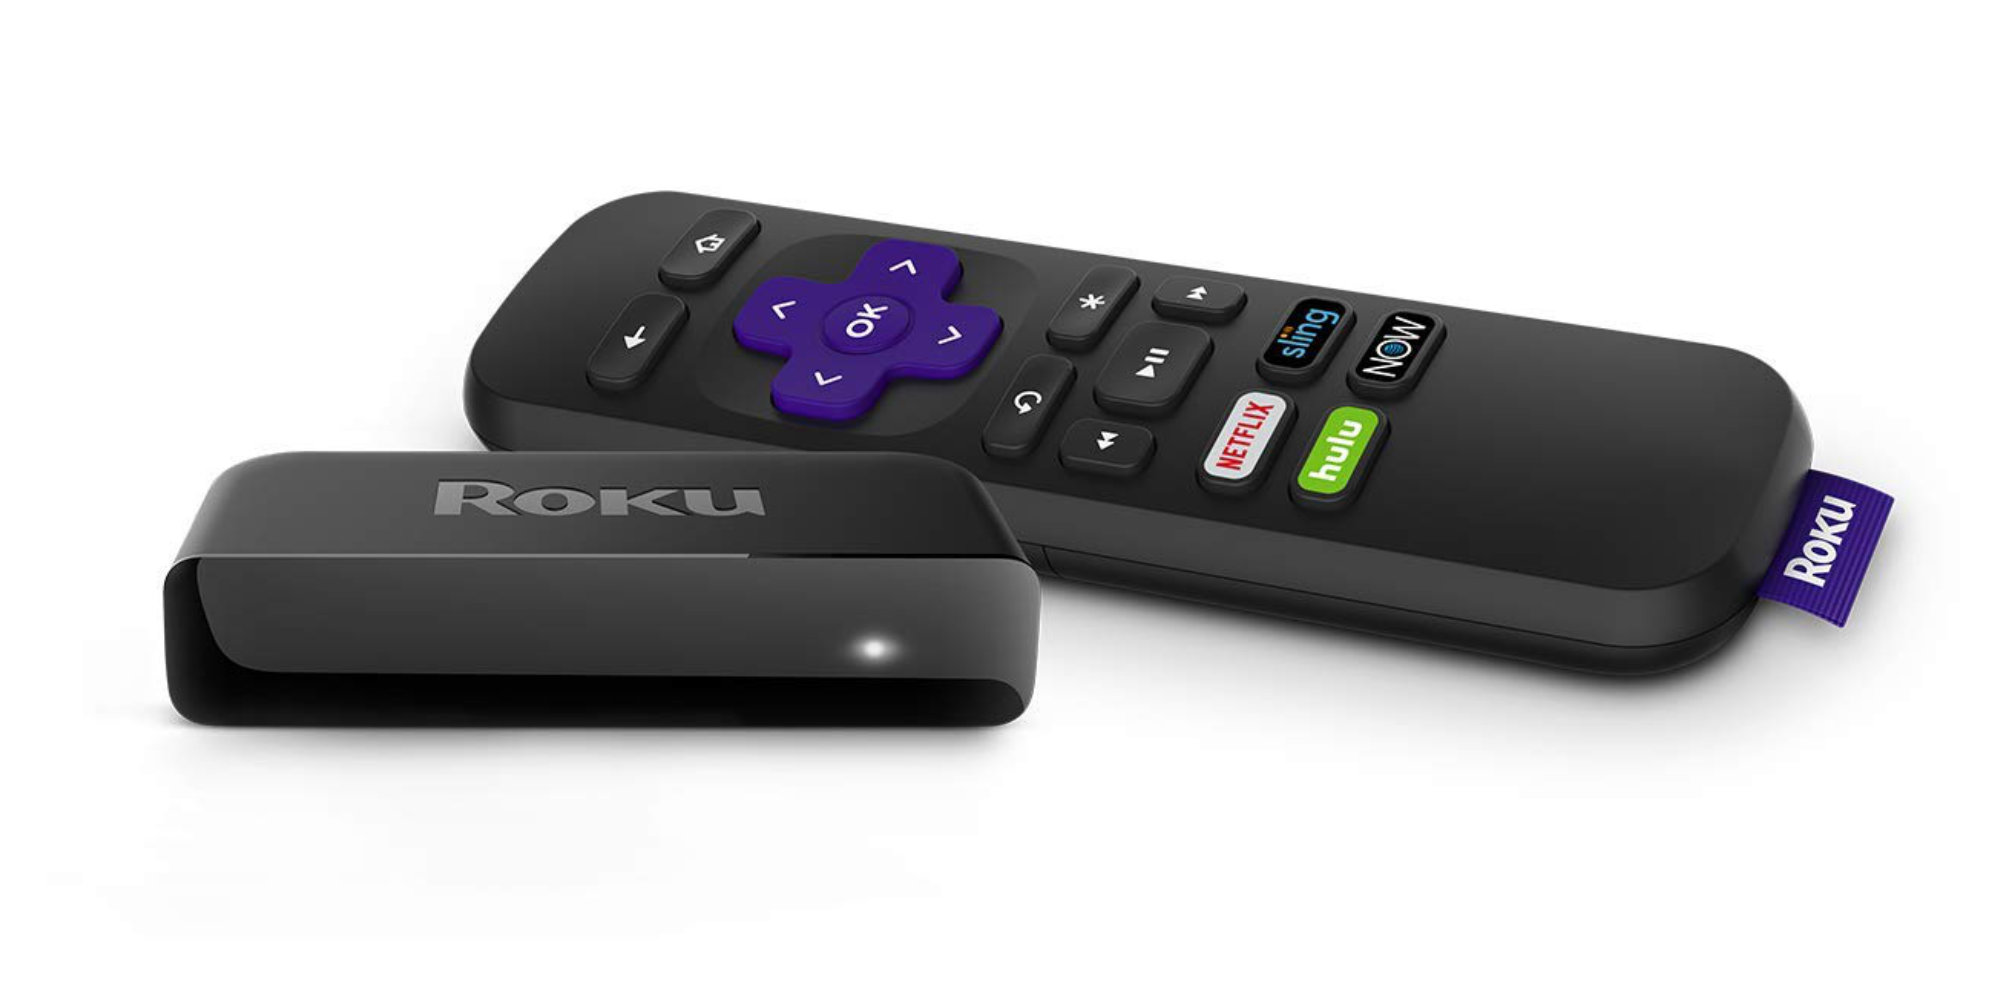 Stream 4K HDR content from Netflix w/ the Roku Premiere for a mere $33 shipped (20% off)